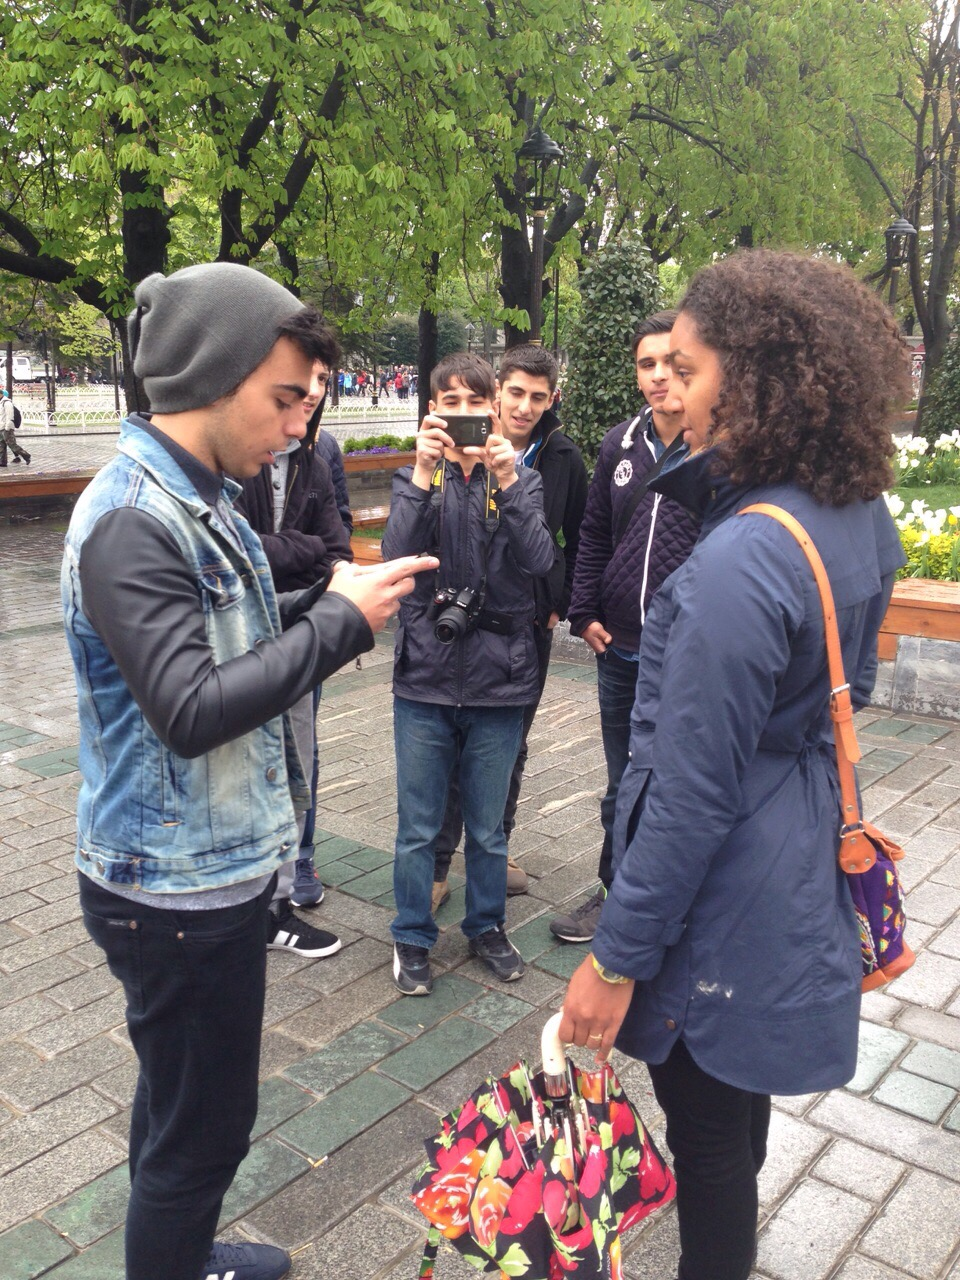 Turkish boys interviewing me thinking I am Rihanna! 2015